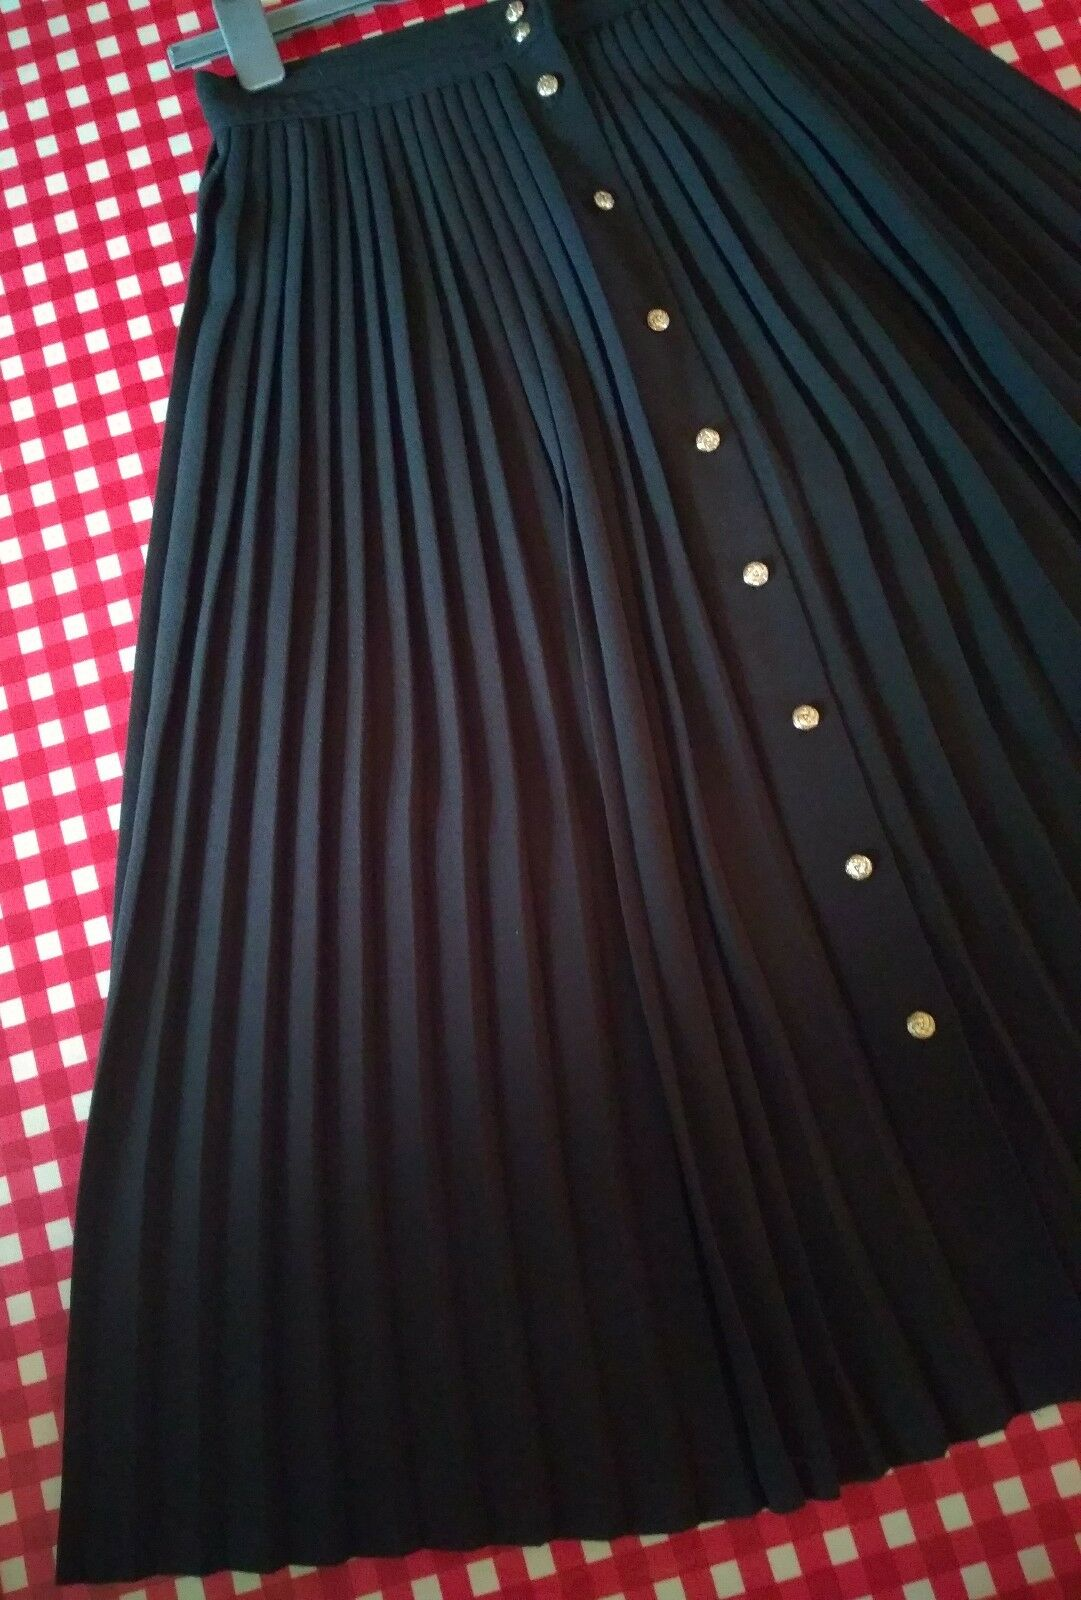 M&S vintage 80s 90s black pleated heavy button down skirt UK 12 quality A/W VGC